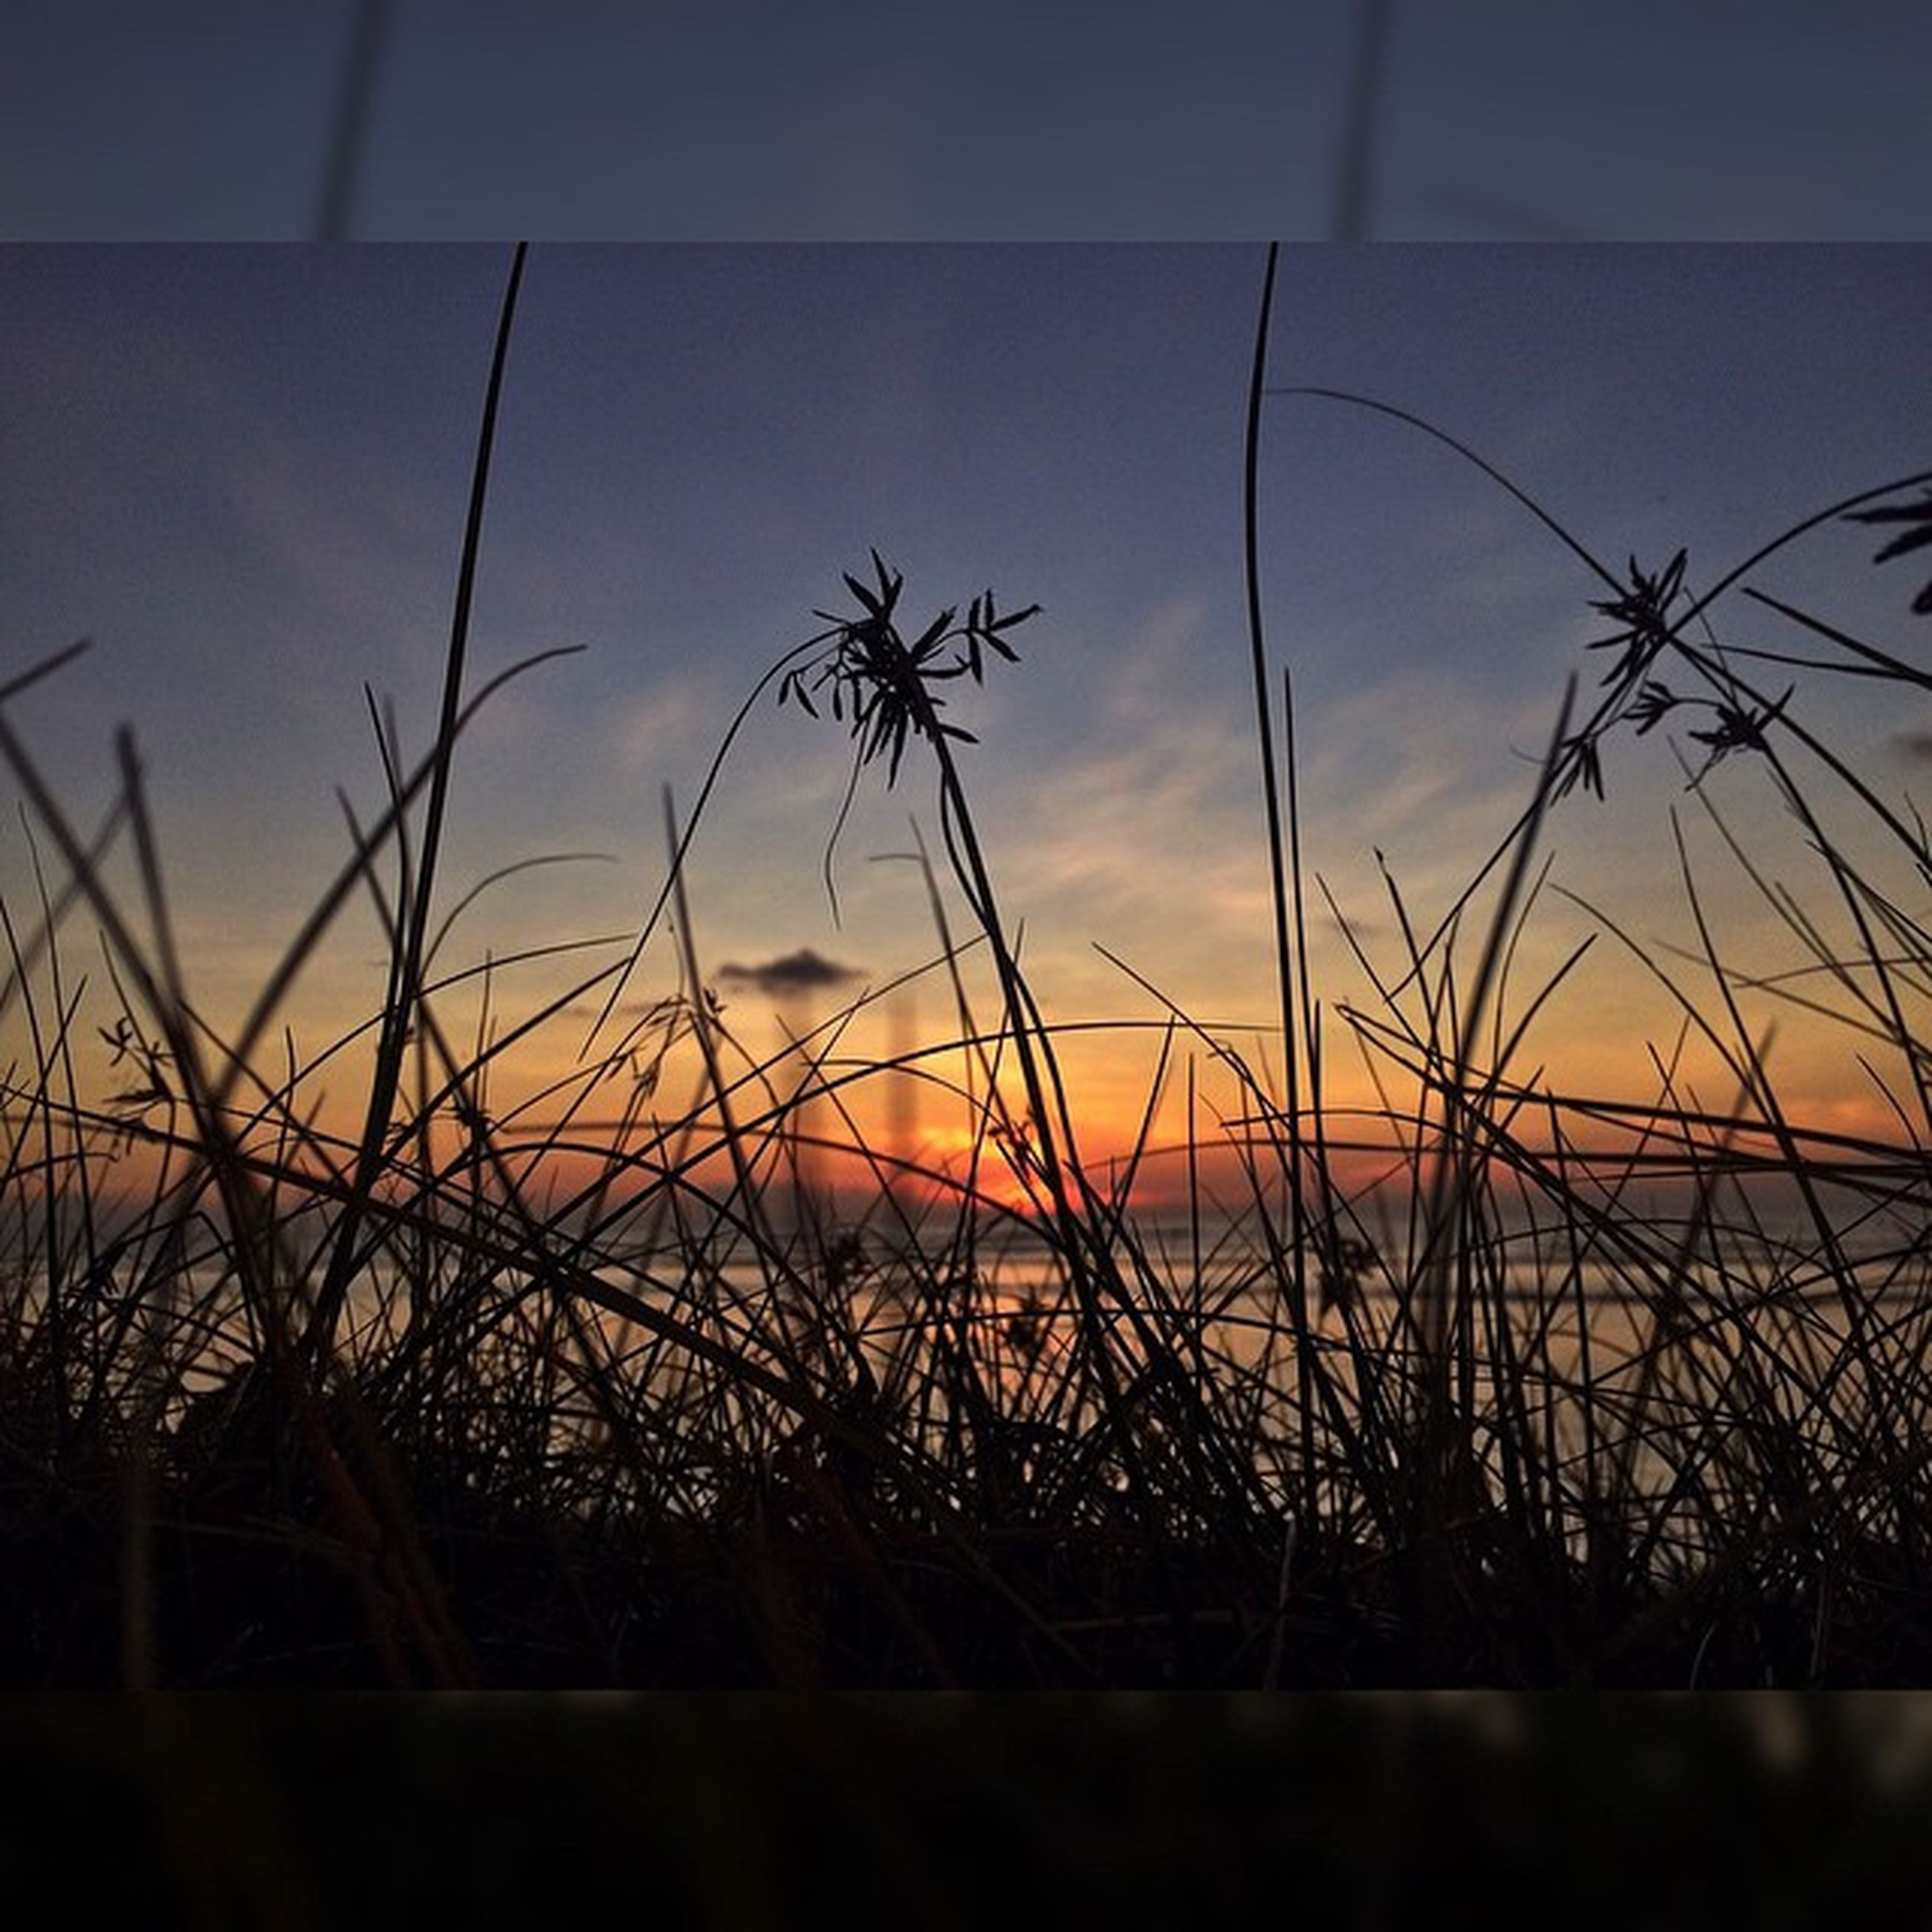 sunset, sky, tranquility, tranquil scene, plant, water, scenics, grass, nature, beauty in nature, silhouette, idyllic, growth, sun, orange color, cloud - sky, focus on foreground, cloud, sea, outdoors